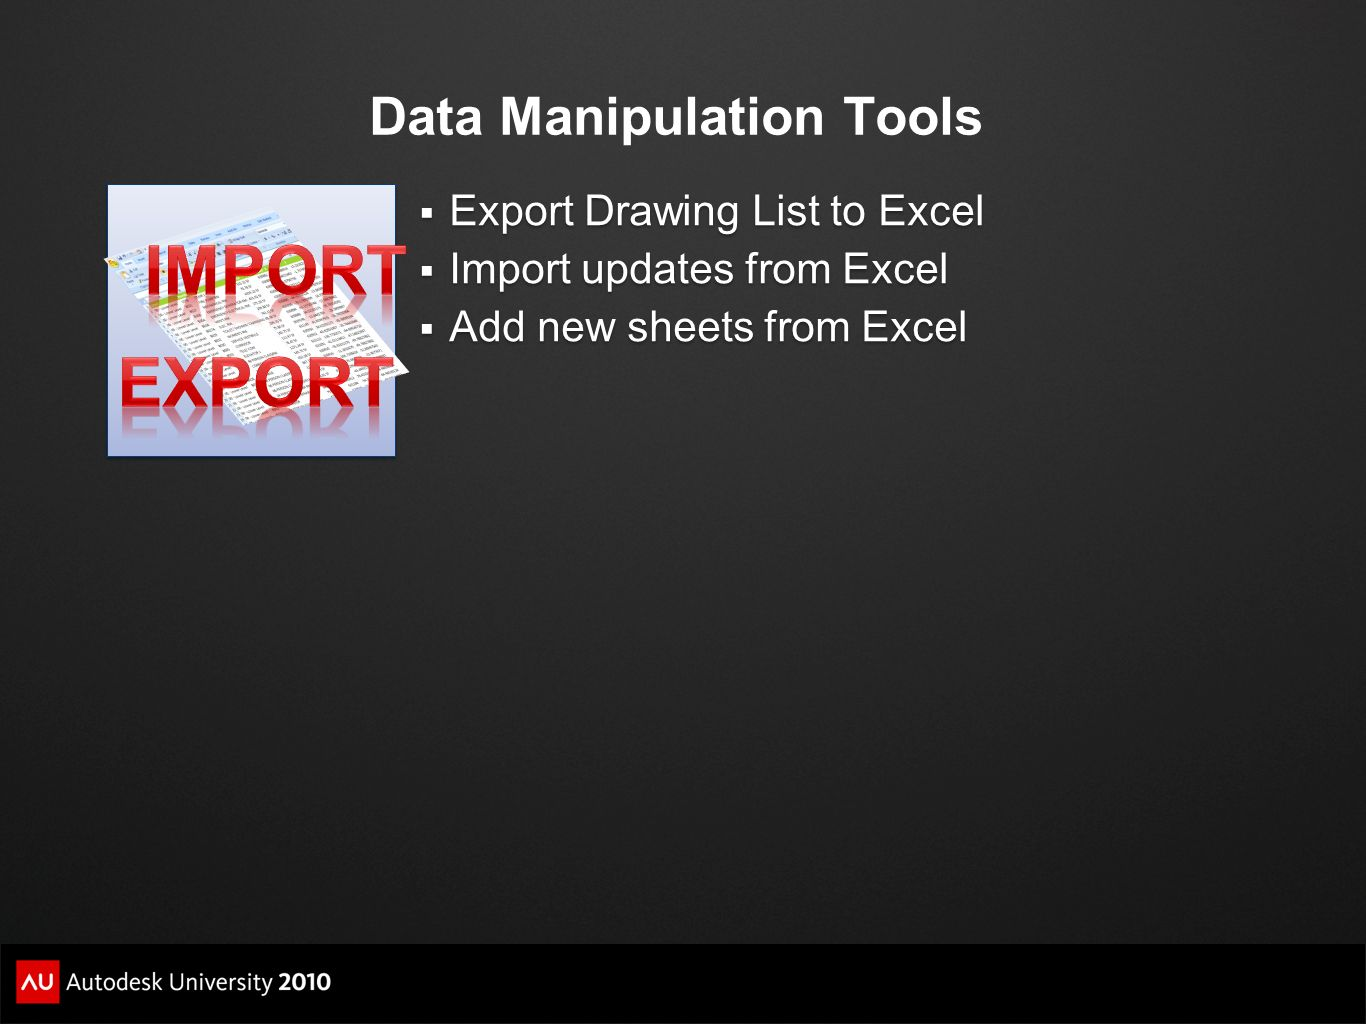 Data Manipulation Tools